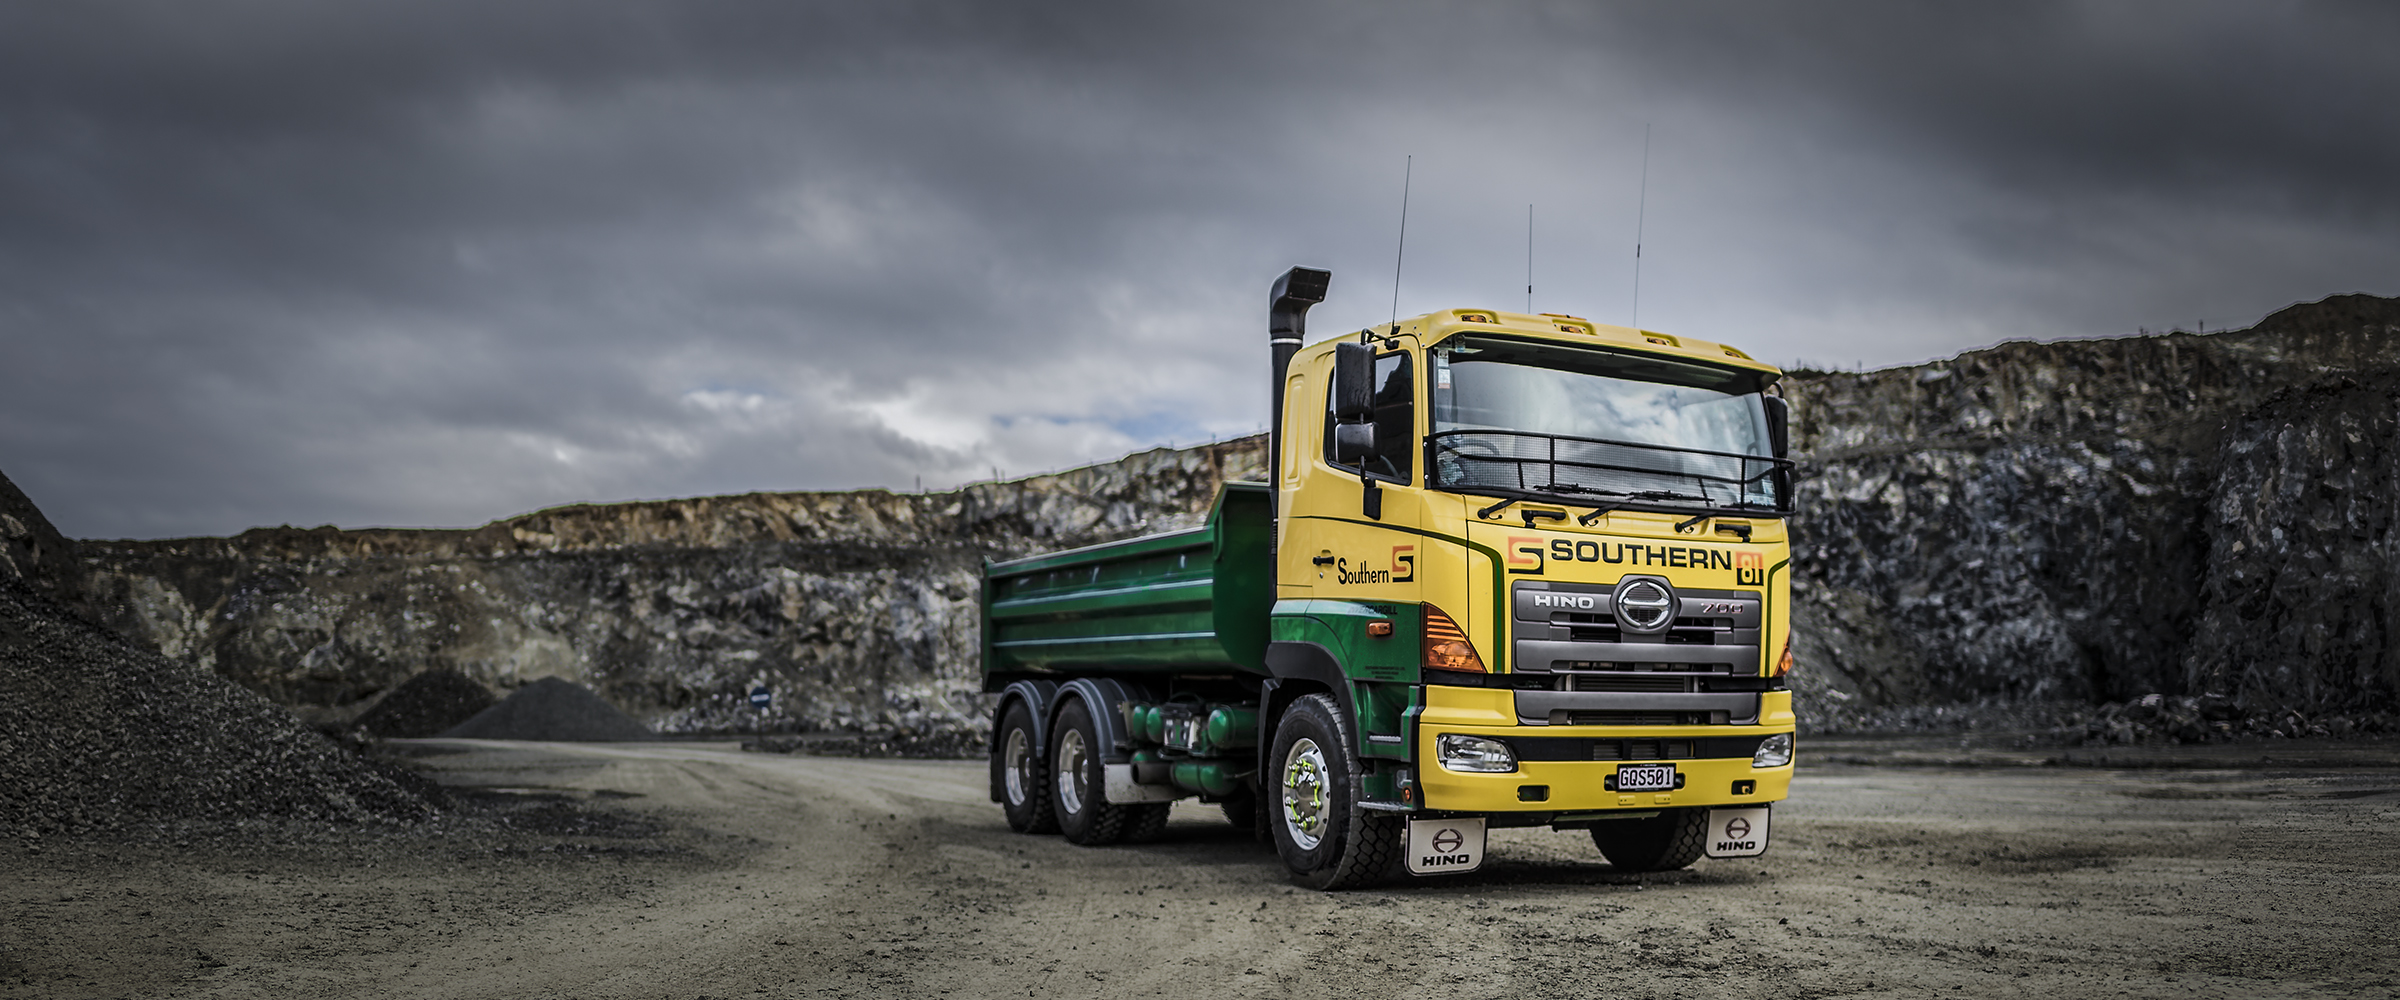 700 Hino Nz A Better Class Of Truck To Make Your